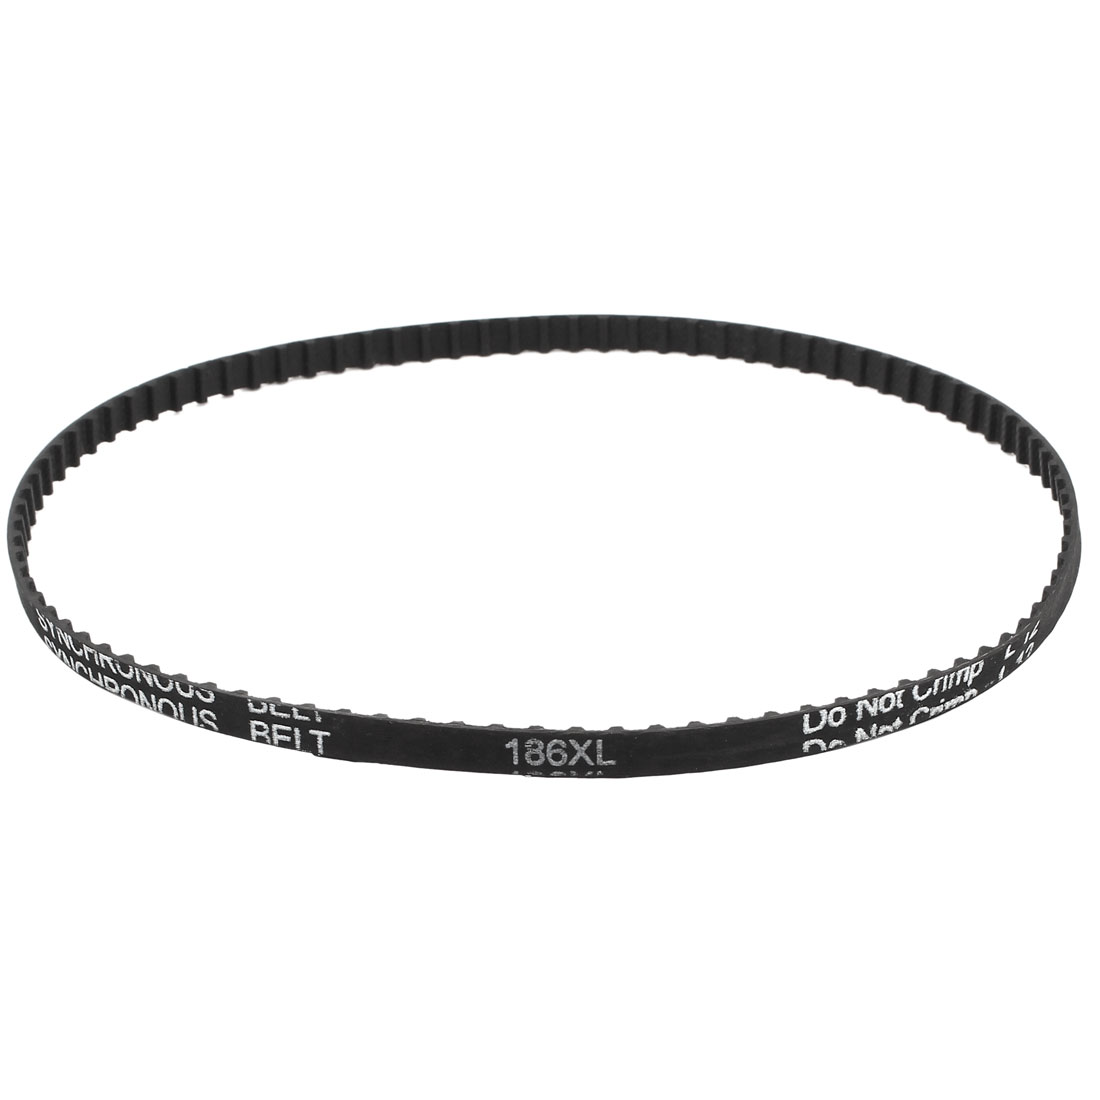 CNC Variable Speed Drive Timing Belt 93 Teeth 6.4mm Width 186XL 025